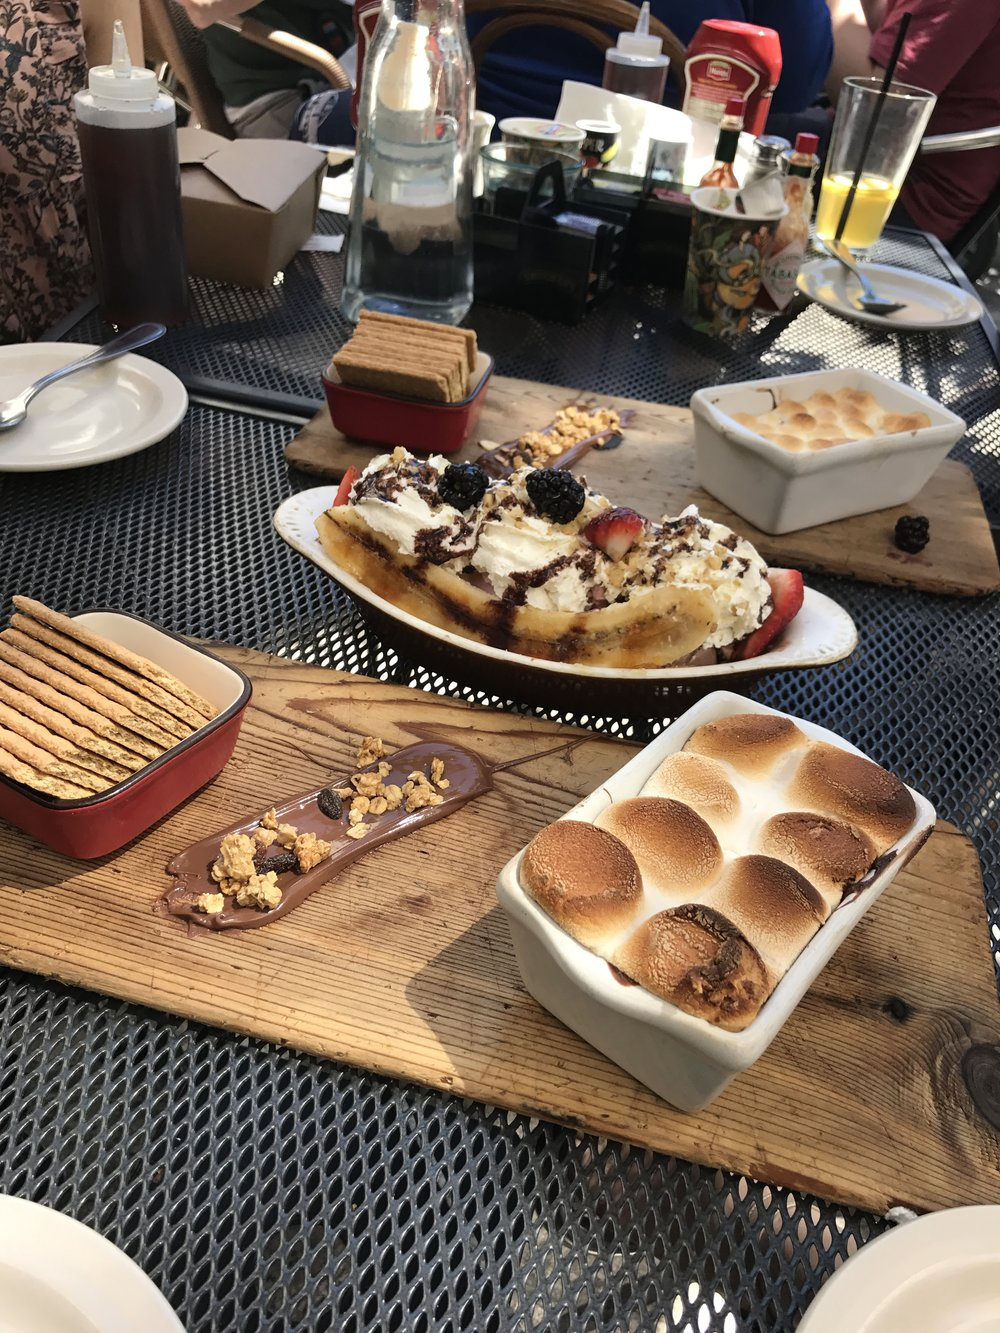 Dessert with brunch? YES PLEASE! Nutella S'mores + Caramel Brulee Banana Split Sundae